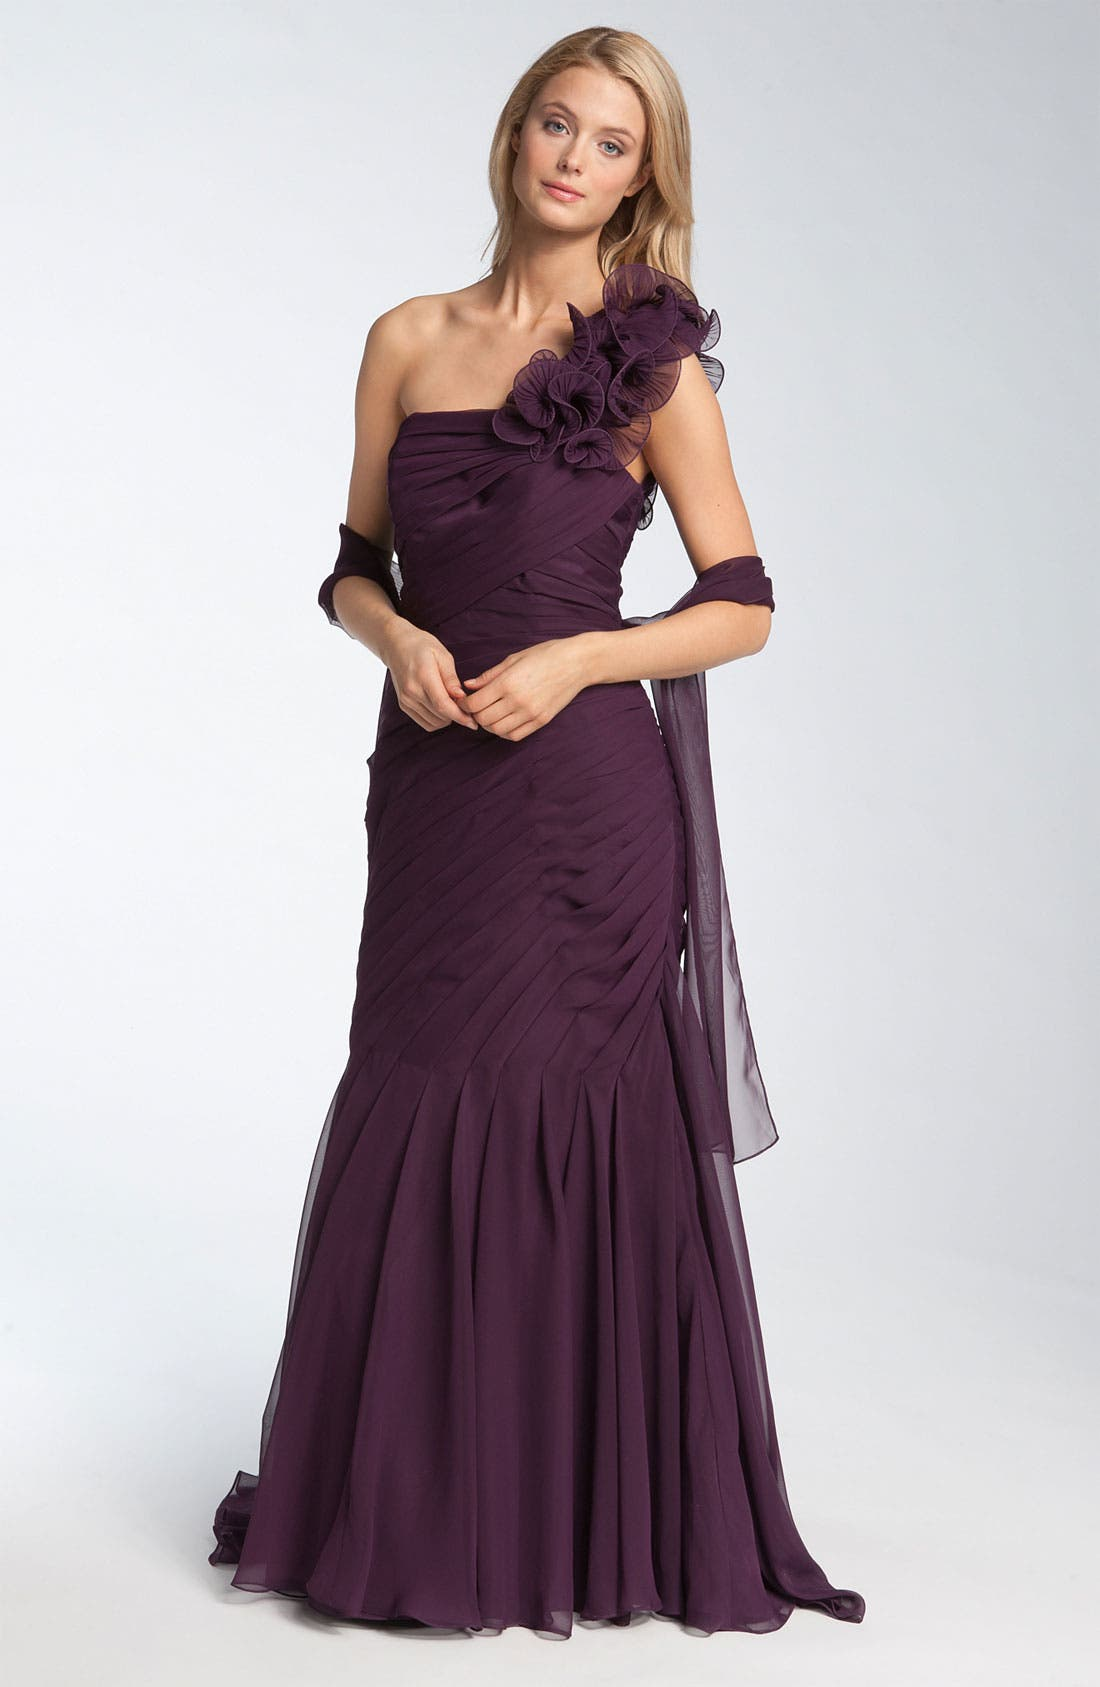 Main Image - Veni Infantino Pleated One Shoulder Ruffle Gown